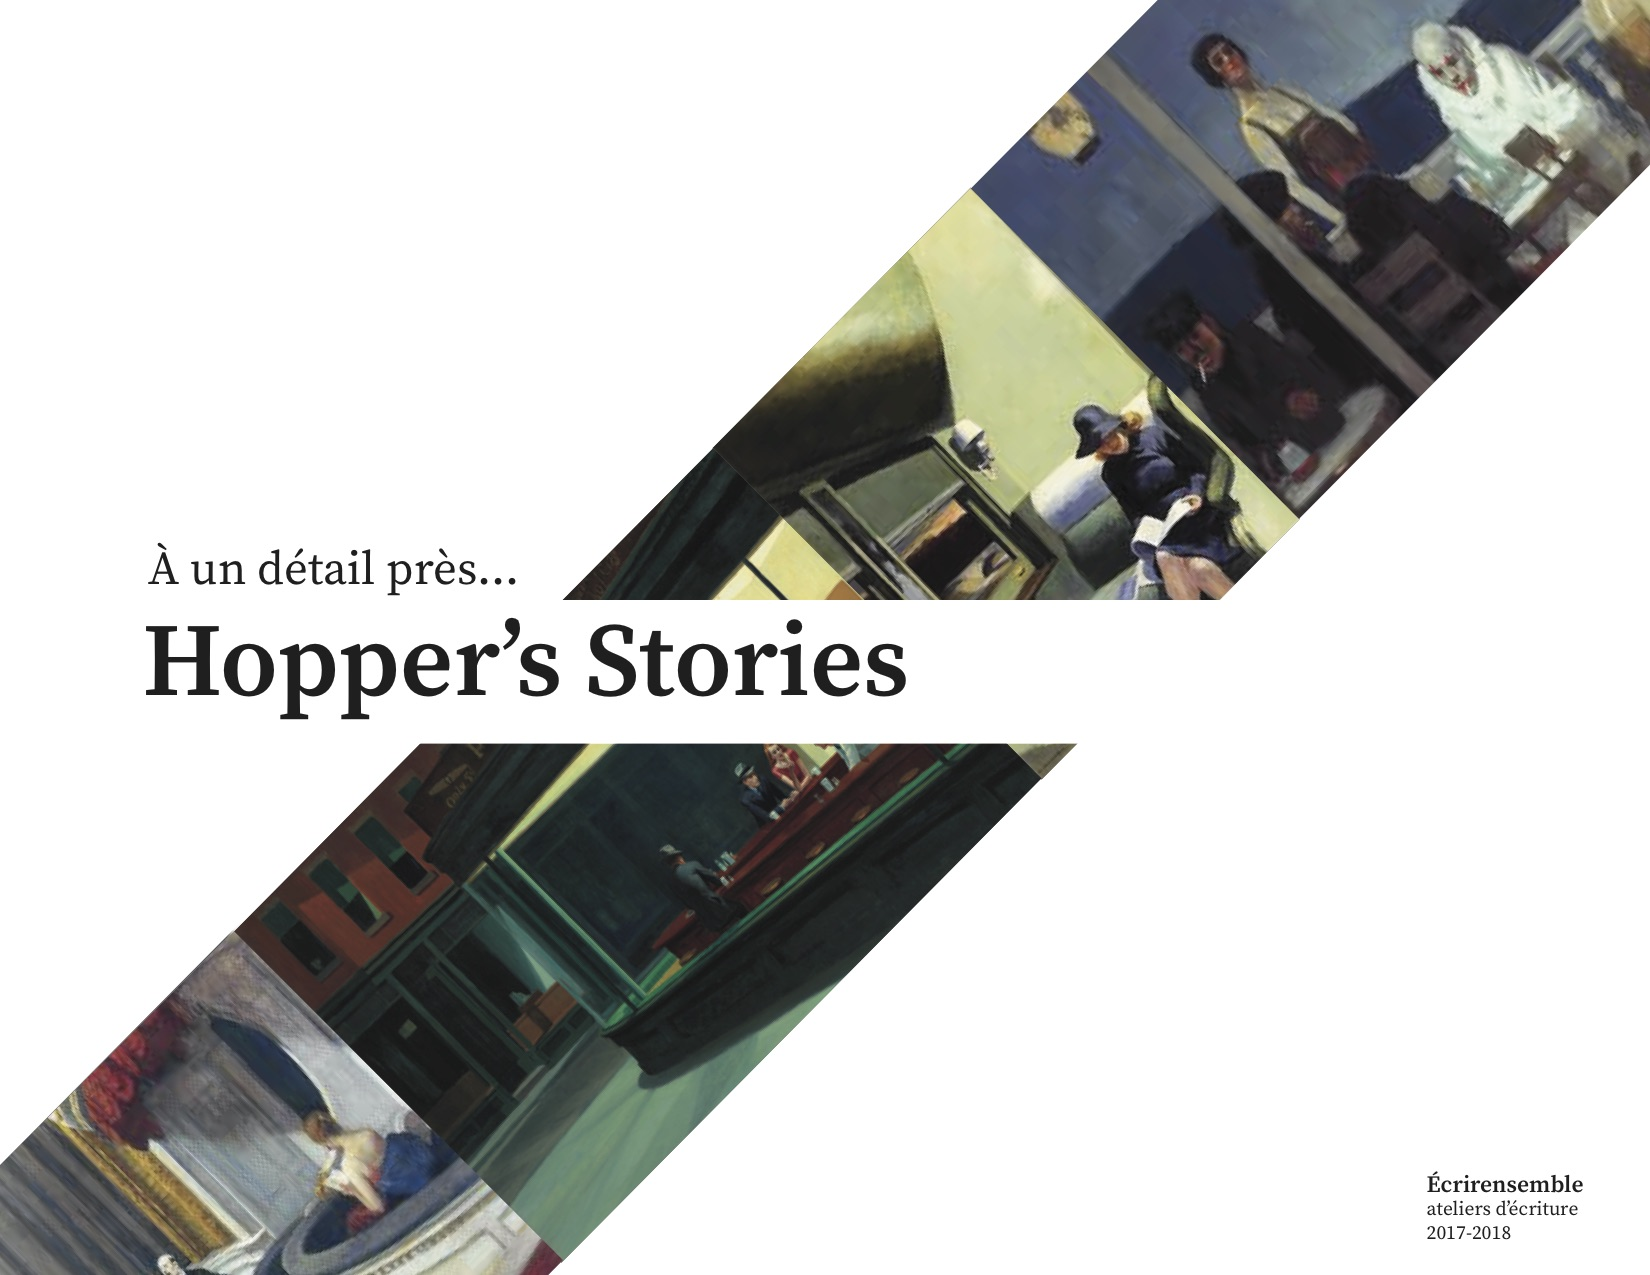 Hopper's Stories 2018